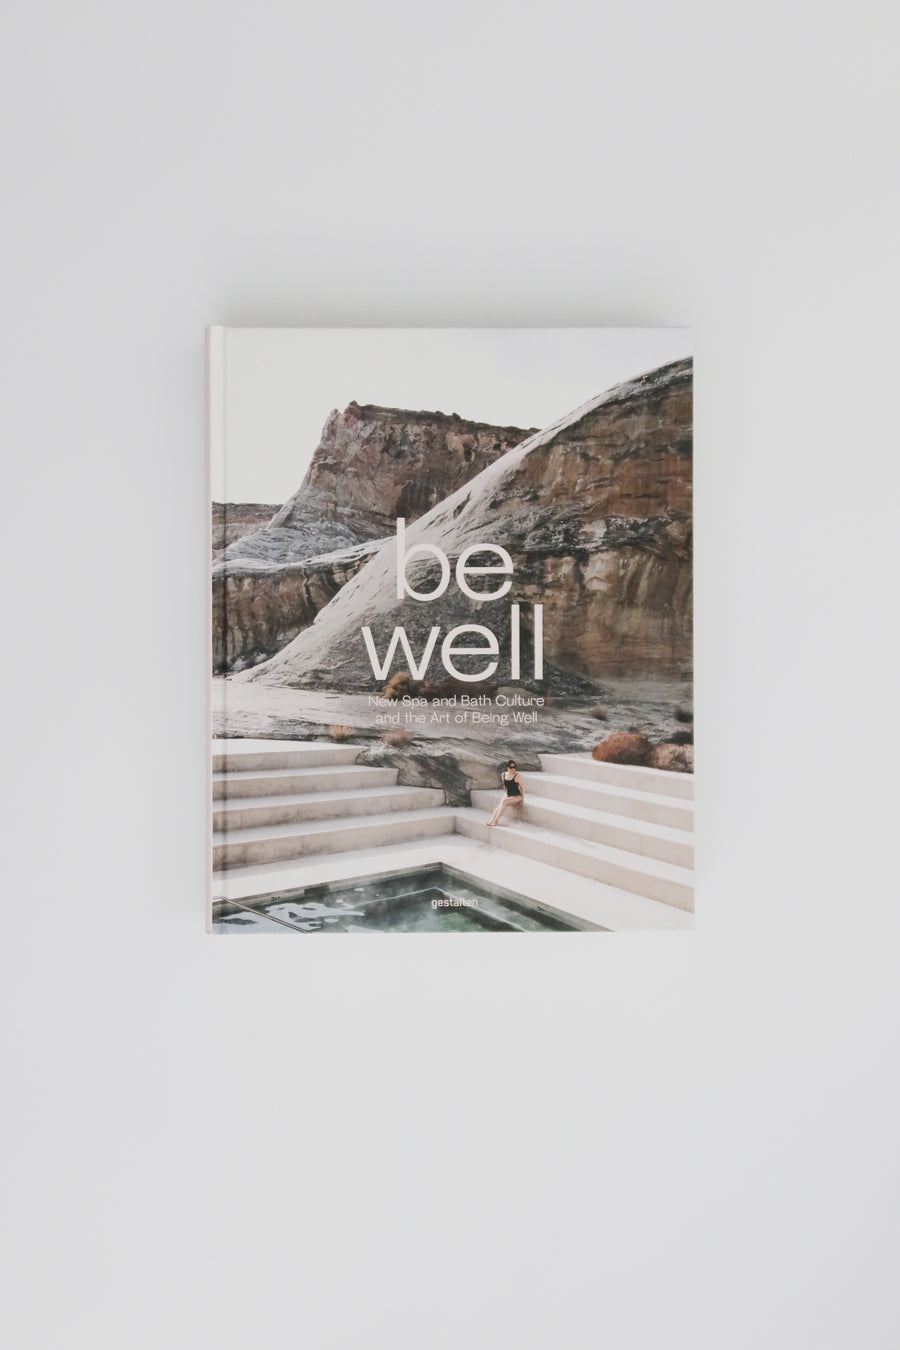 Be Well - New Spa and Bath Culture and the Art of Being Well